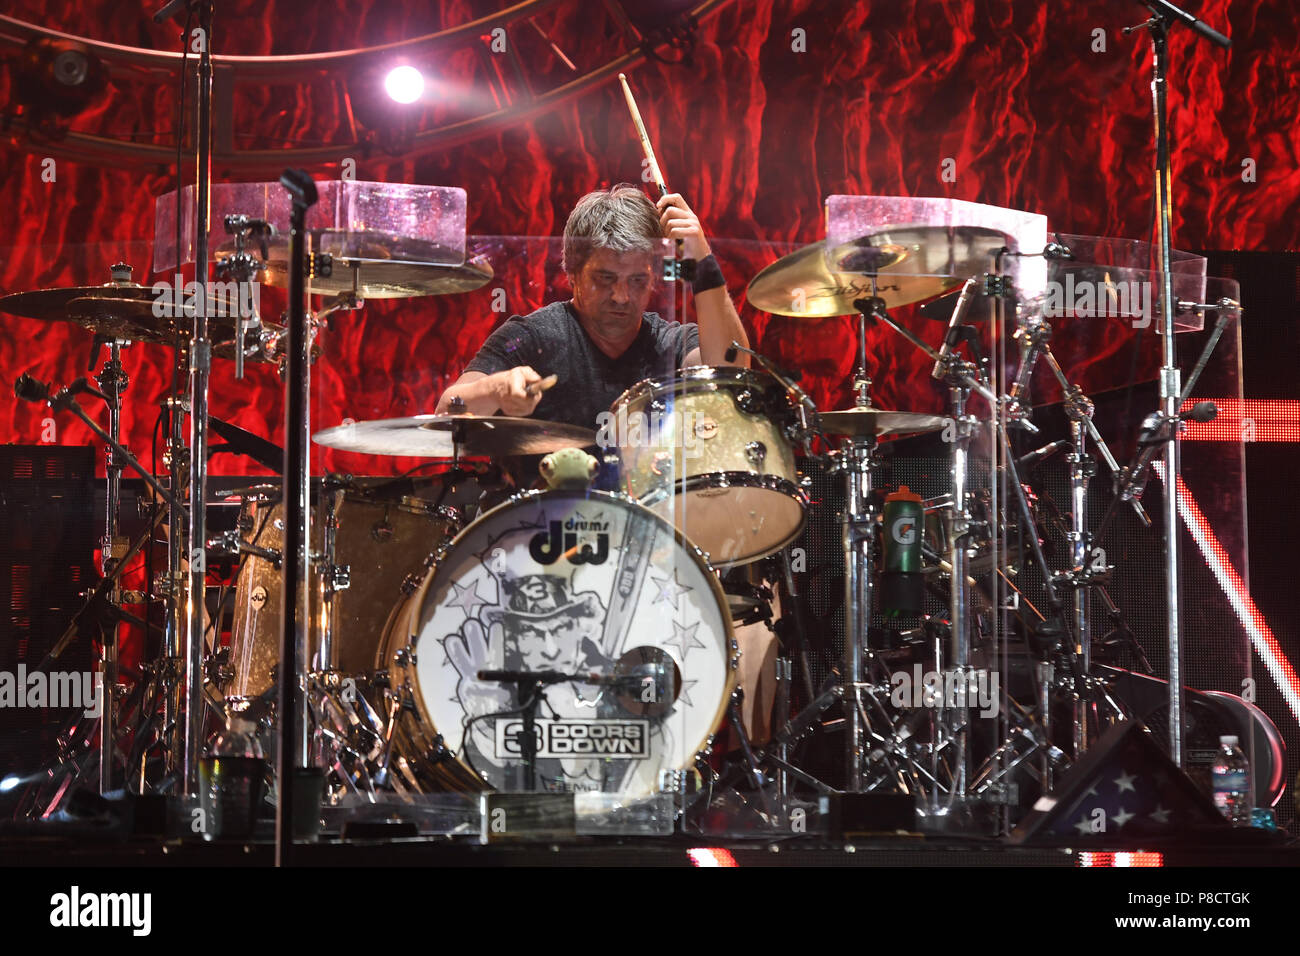 3 Doors Down performs at The Mizner Park Amphitheatre on July 10 2018 in Boca Raton Florida. Credit Mpi04/Media Punch/Alamy Live News & Boca Raton. 10th July 2018. 3 Doors Down performs at The Mizner ...